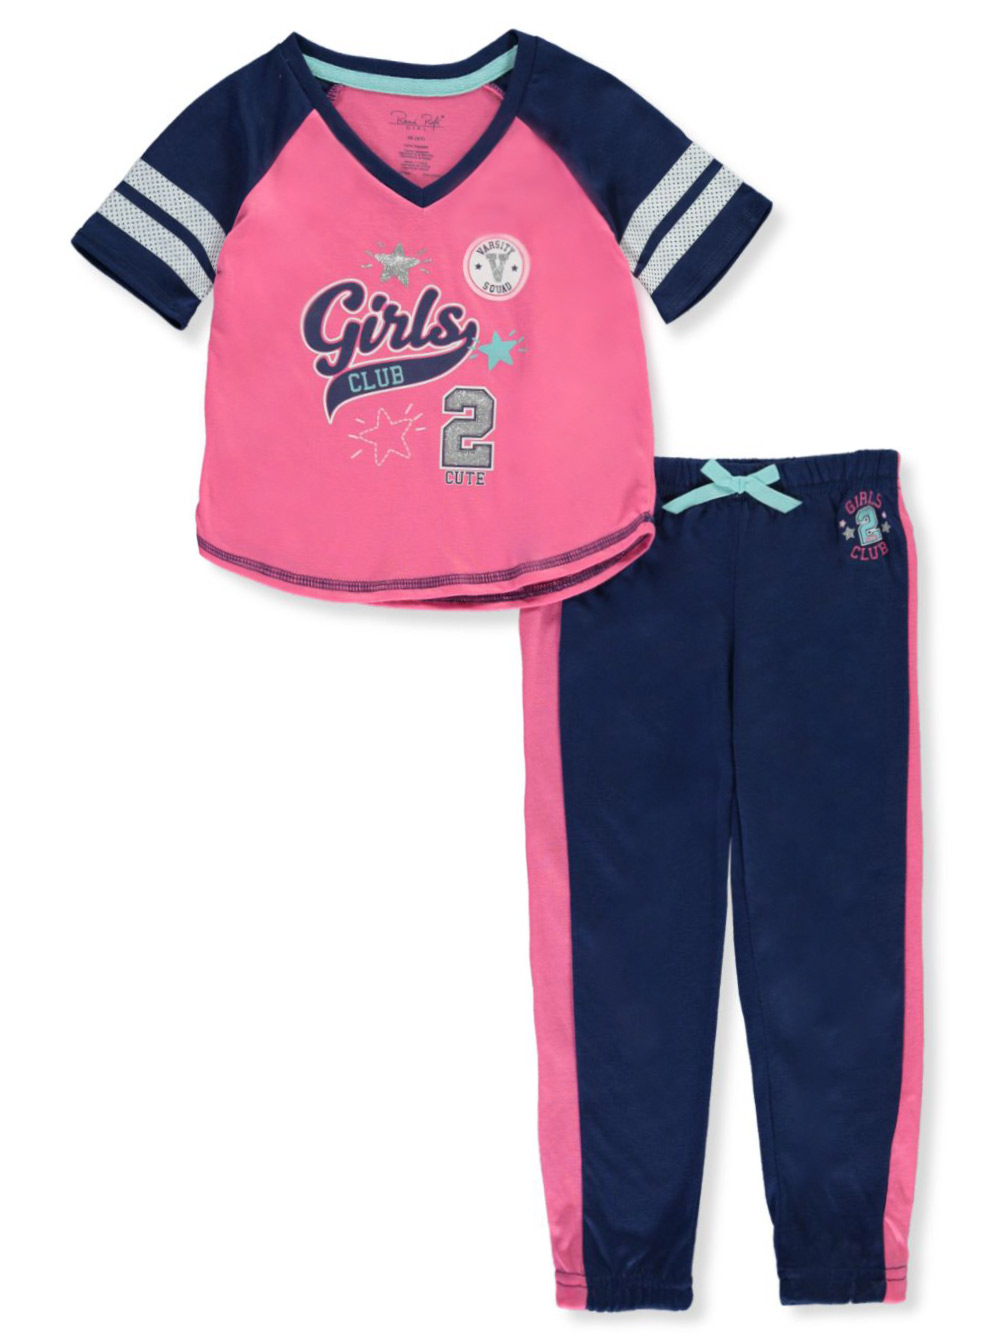 Size 4-5 Pajamas for Girls